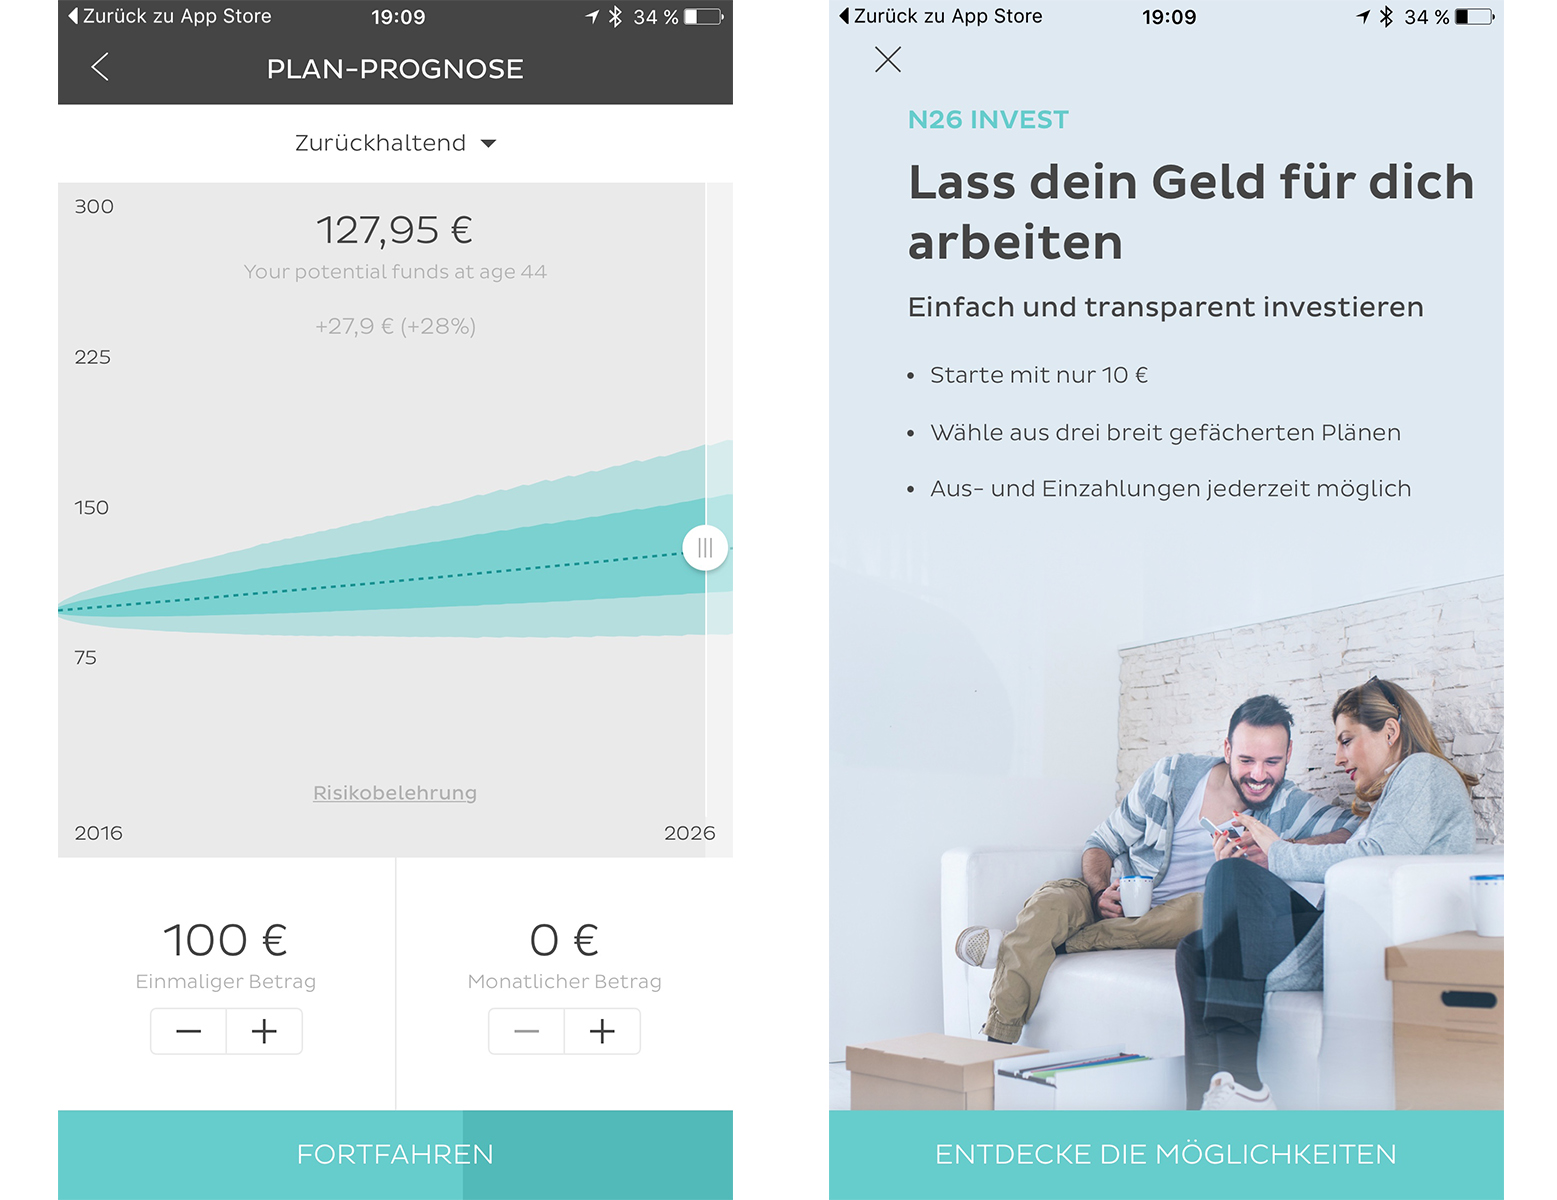 N26 invest1